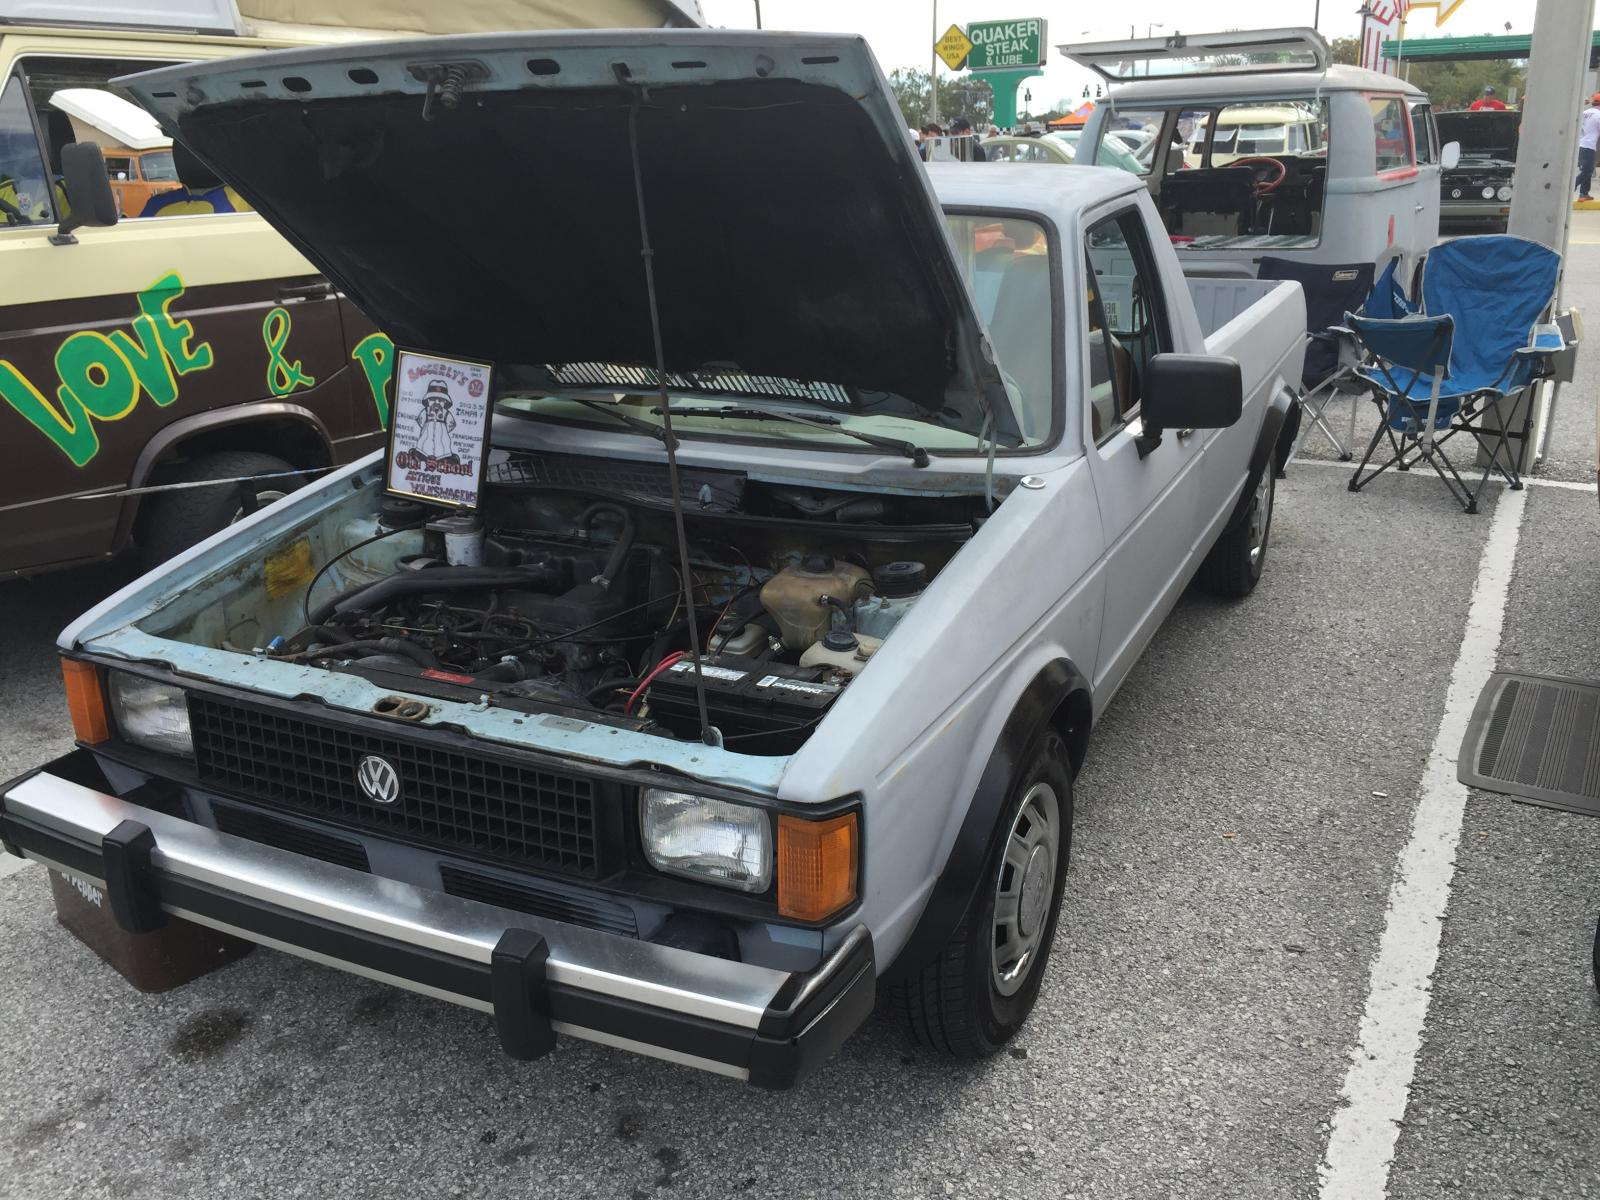 Caddy at Quaker Steak & Lube, 2015